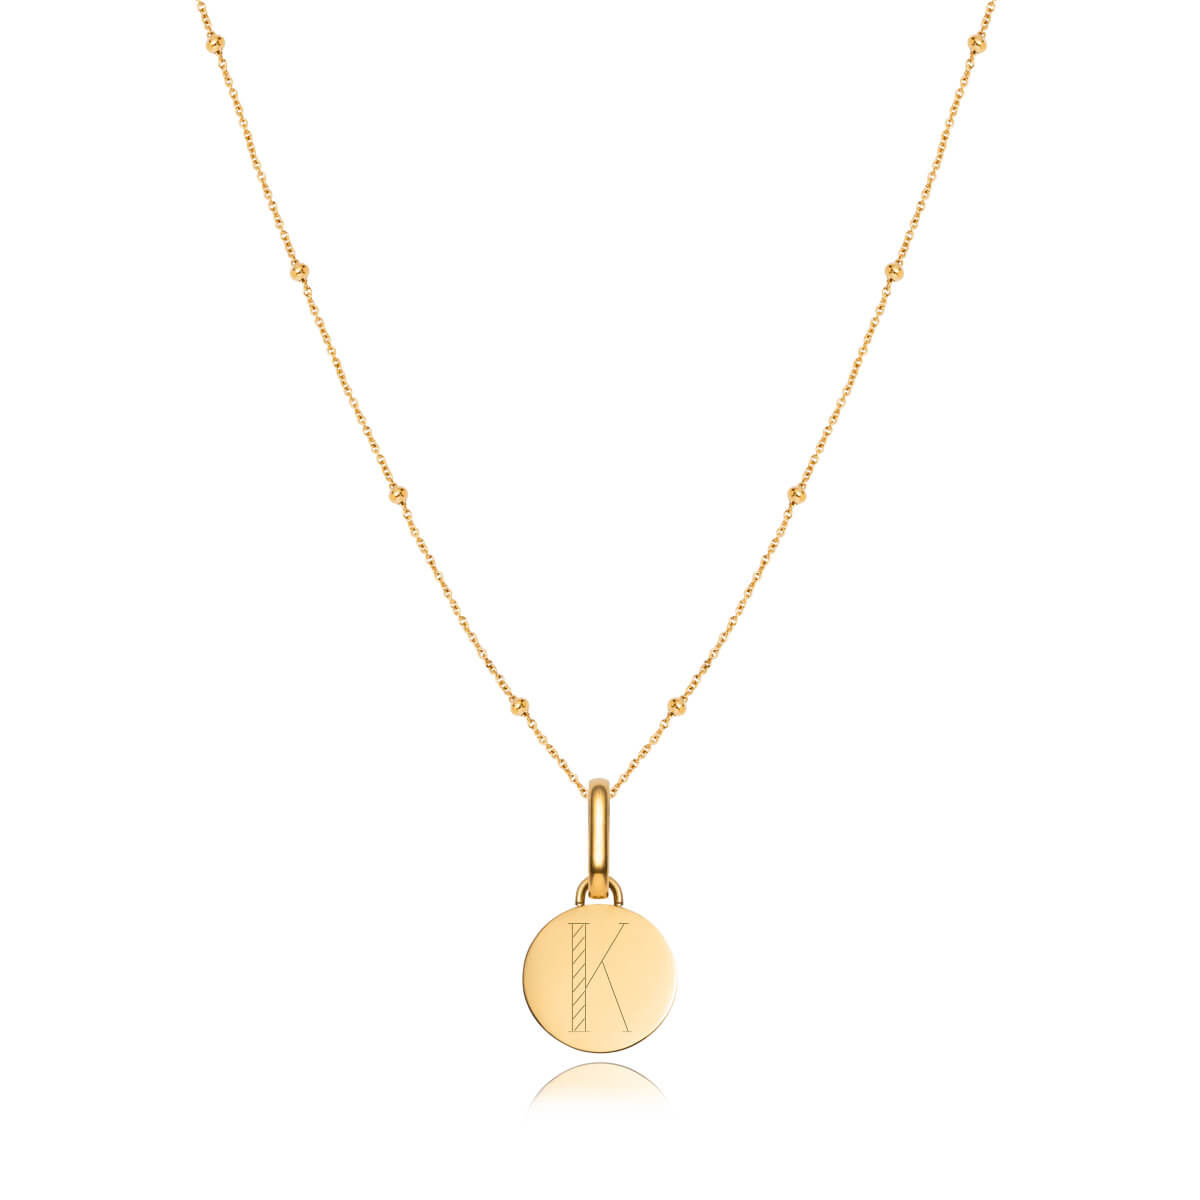 Circular Sphere Chain Necklace (Gold)